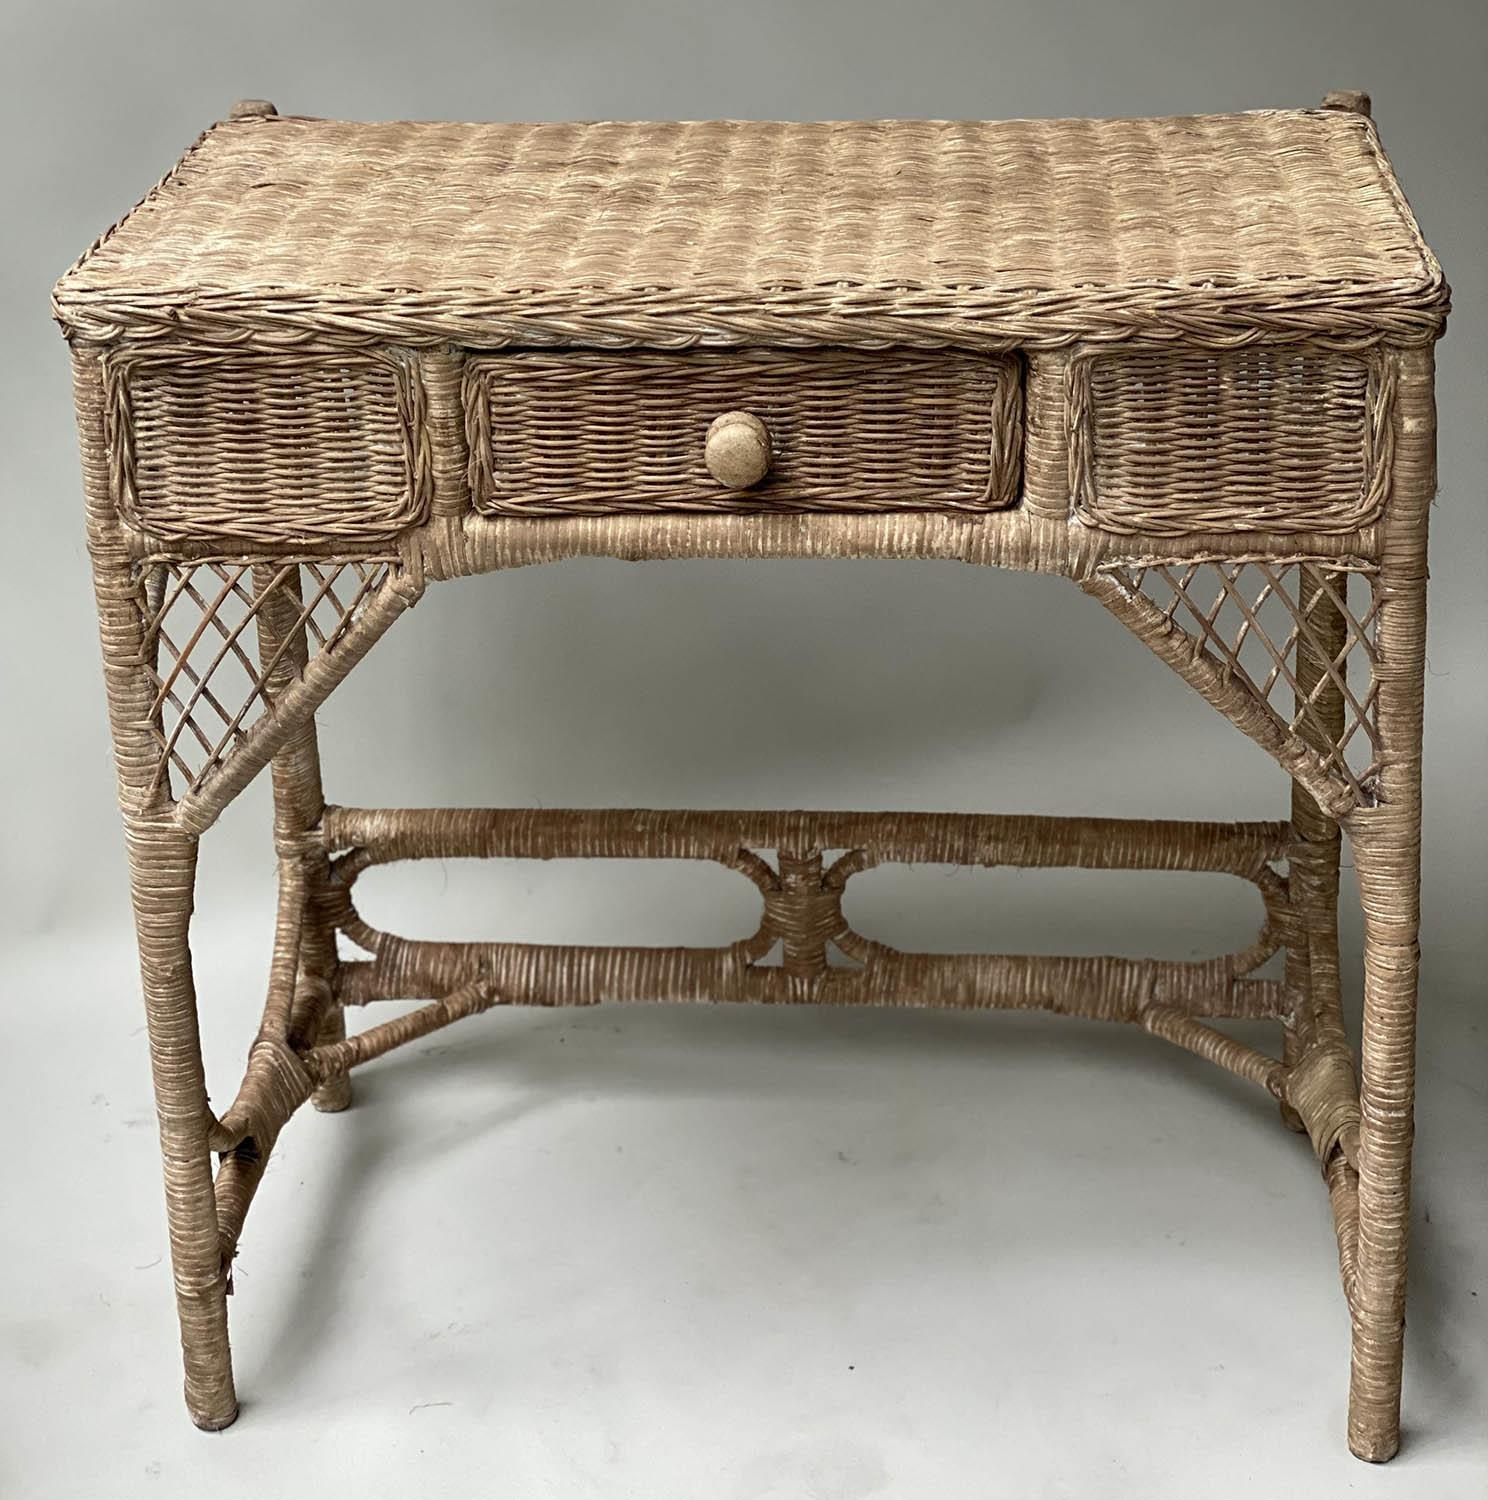 CONSOLE/HALL TABLE, vintage rattan and cane woven, with frieze drawer, 76cm W x 77cm x 42cm.